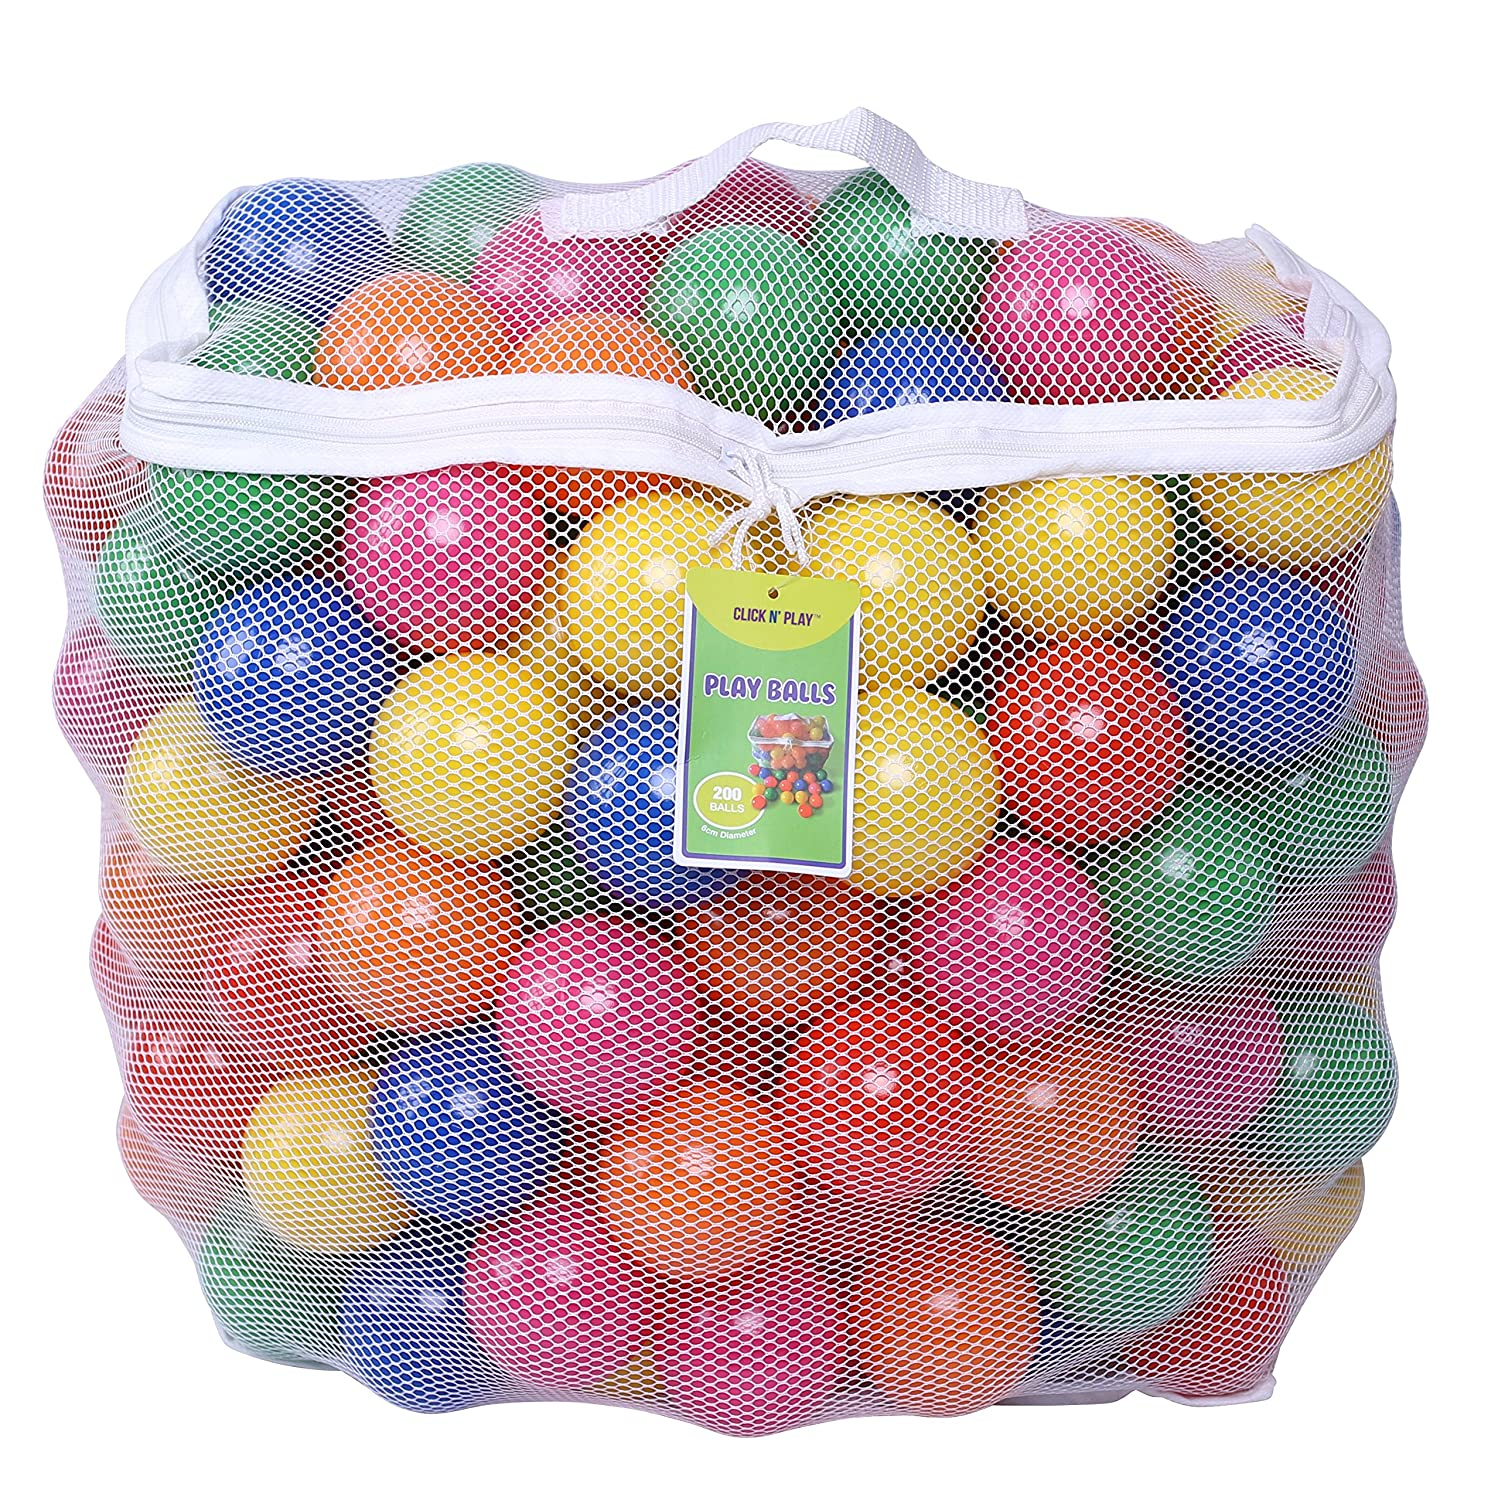 Click N Play Phthalate Free BPA Free Crush Proof Plastic Ball, Pit Balls 6 Bright Colors in Reusable and Durable Storage Mesh Bag with Zipper